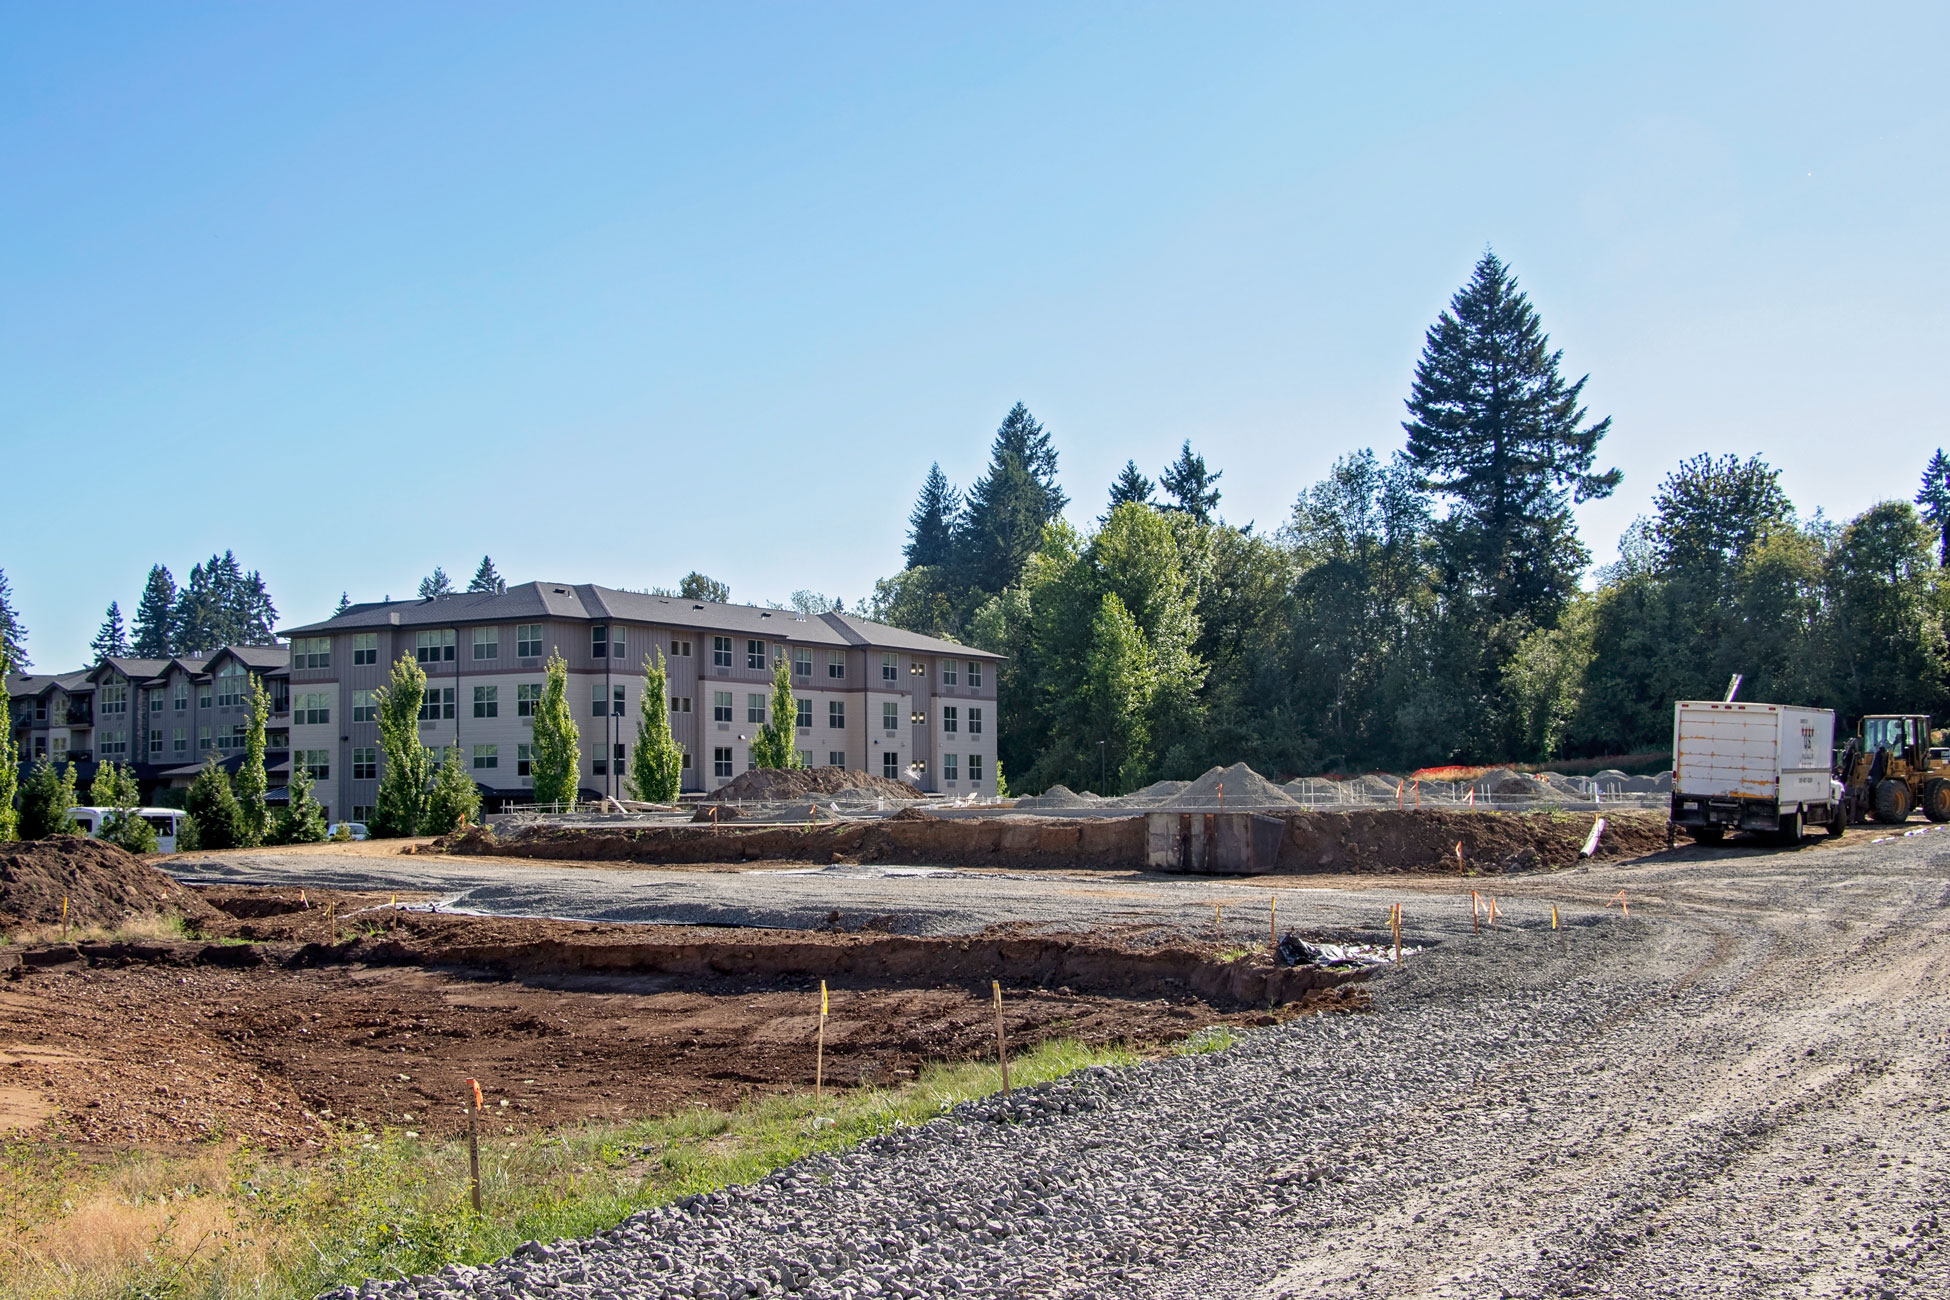 The Trails at Salmon Creek construction